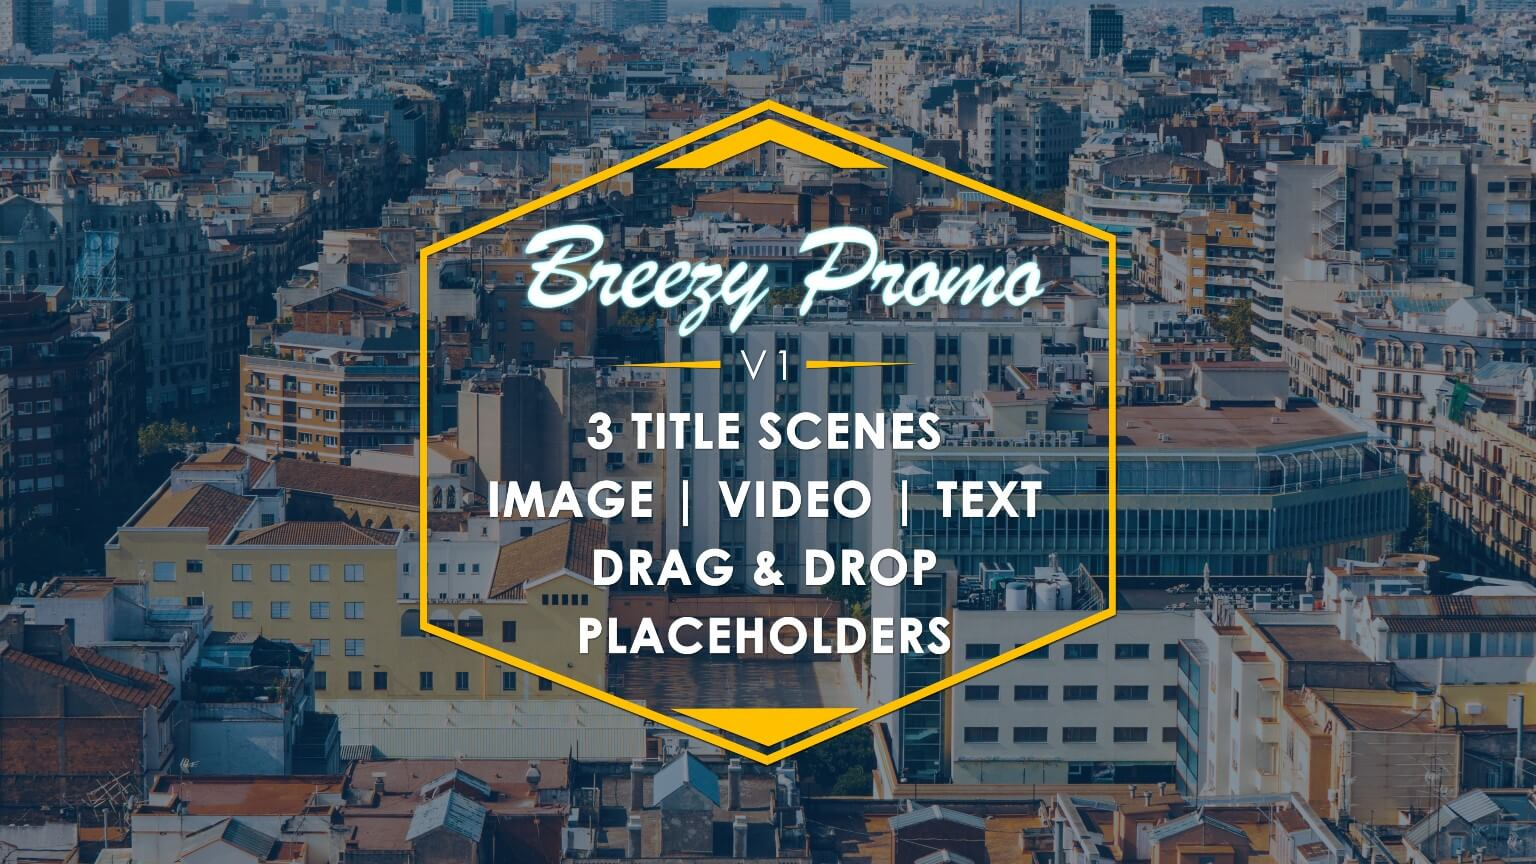 Event Promo After Effects Template: Breezy Promo V1